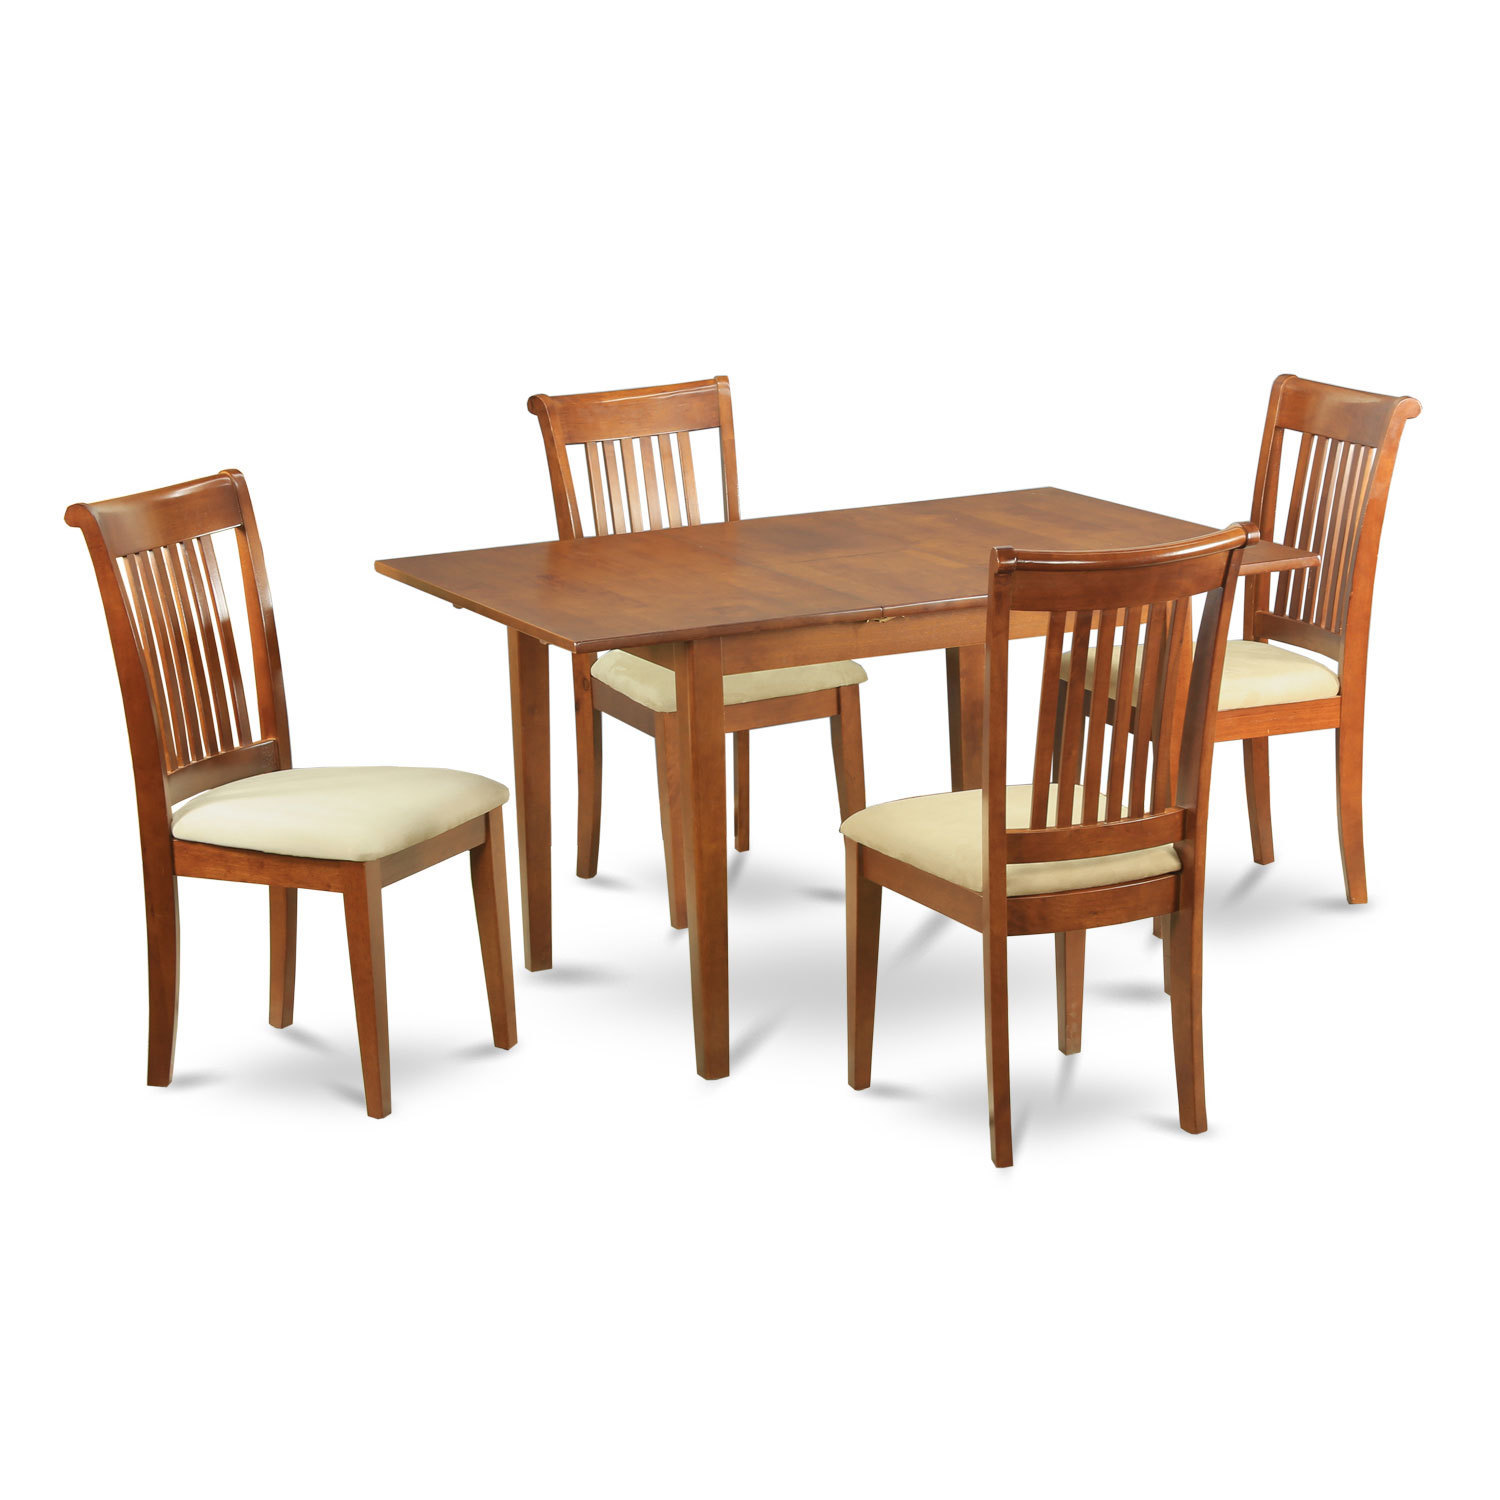 Small dinette set design homesfeed for Wooden small dining table